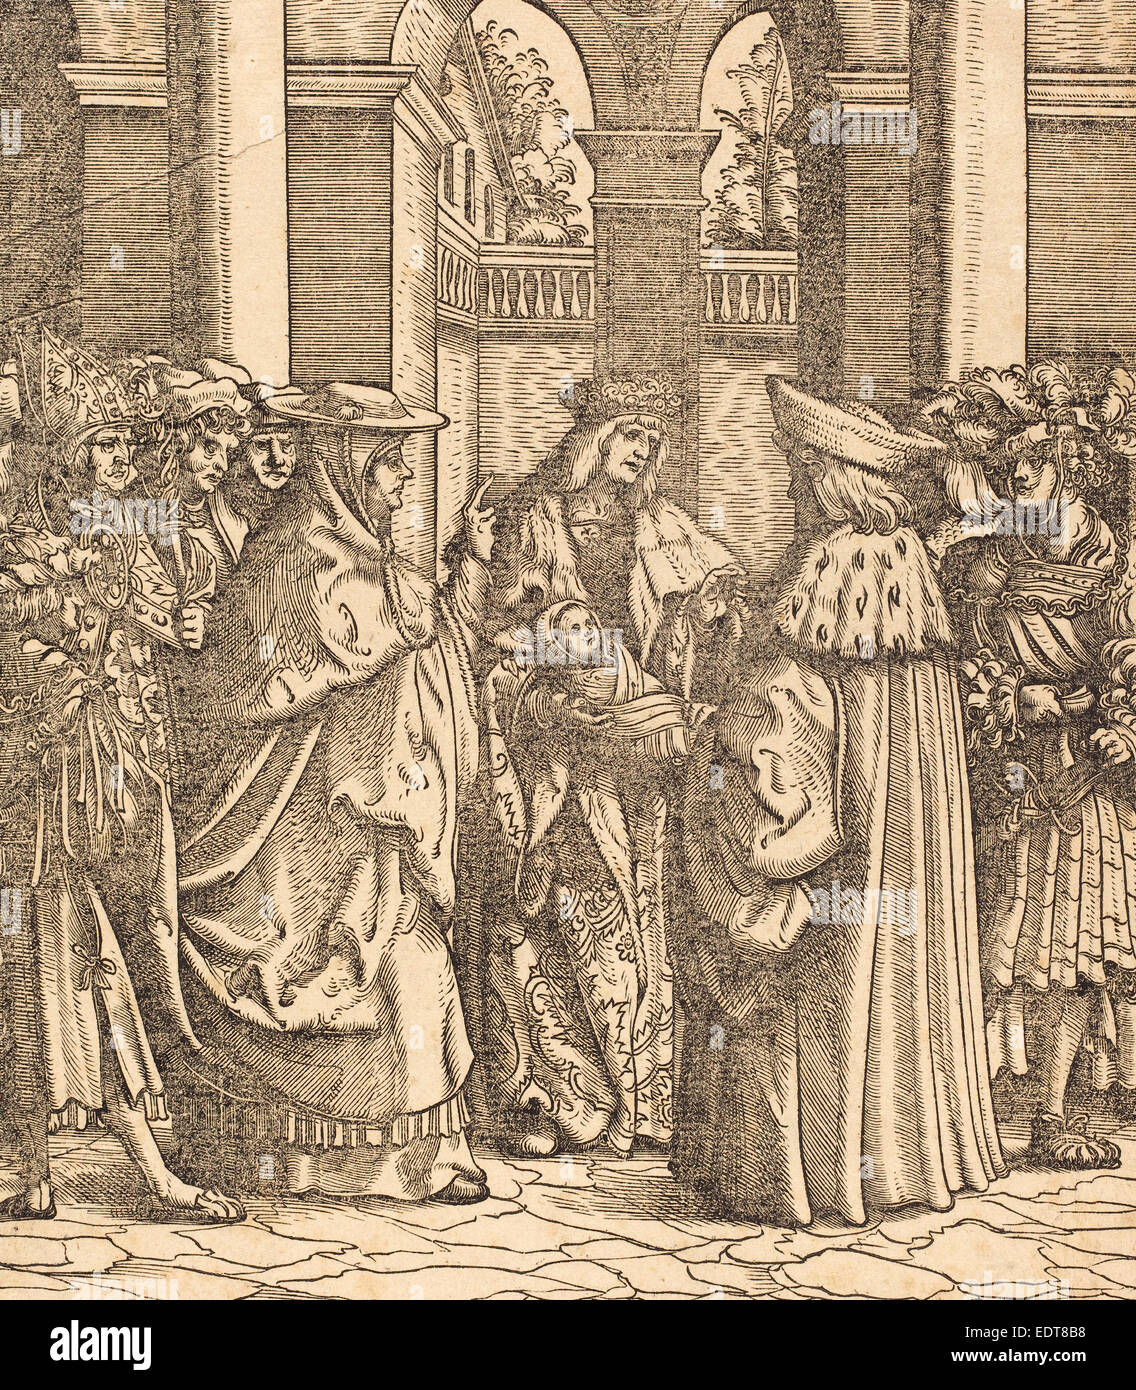 Hans Burgkmair I (German, 1473 - 1531), The Archbishop Blessing the Child  after the Baptism, woodcut